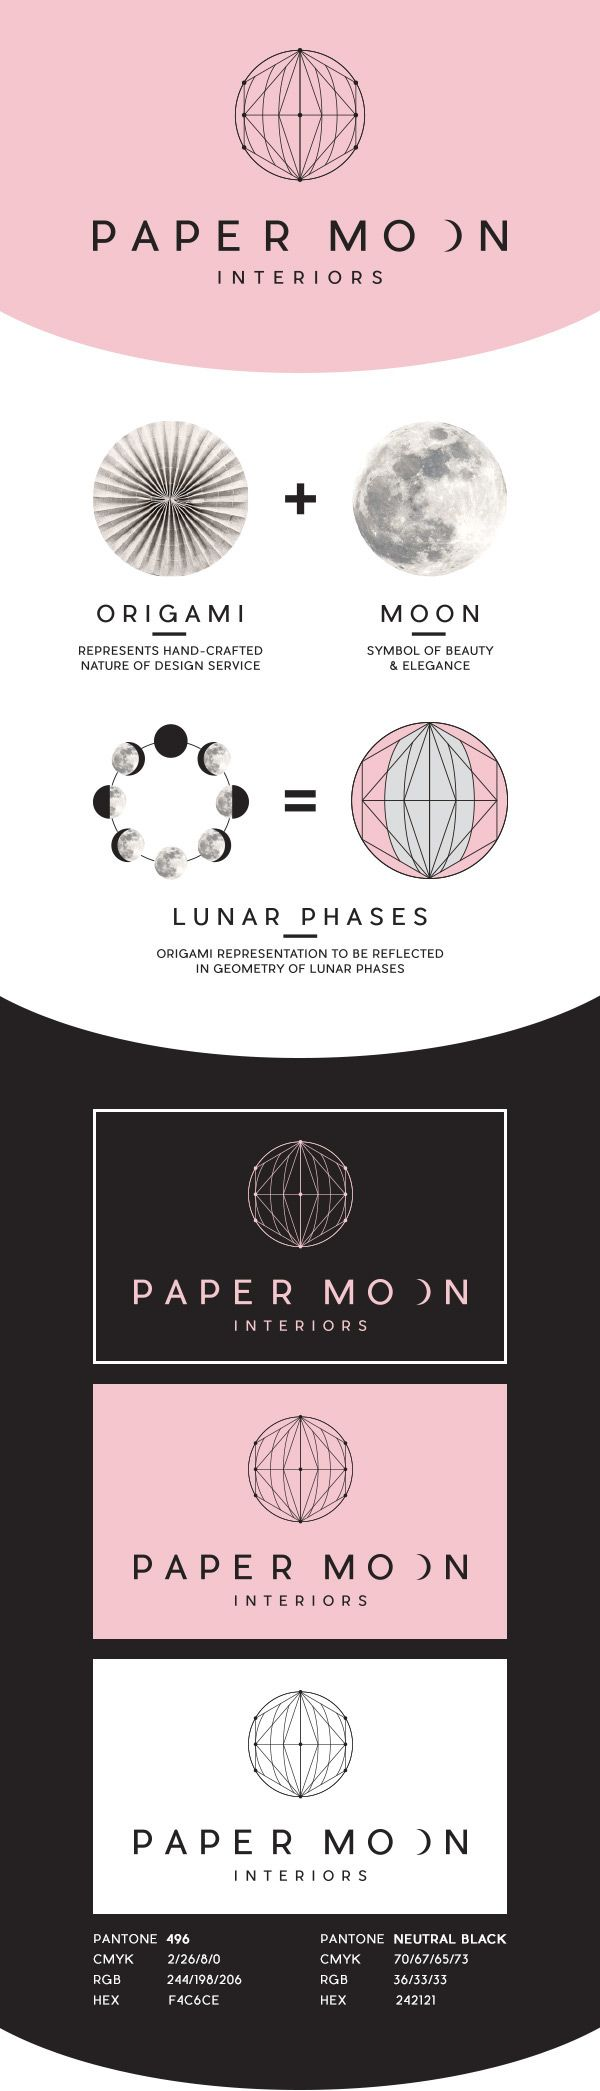 Paper Moon Interiors Is An Interior Design Service Dedicated To Clients On The Go They Provide Space Plans Material Samples And Marker Or Digital